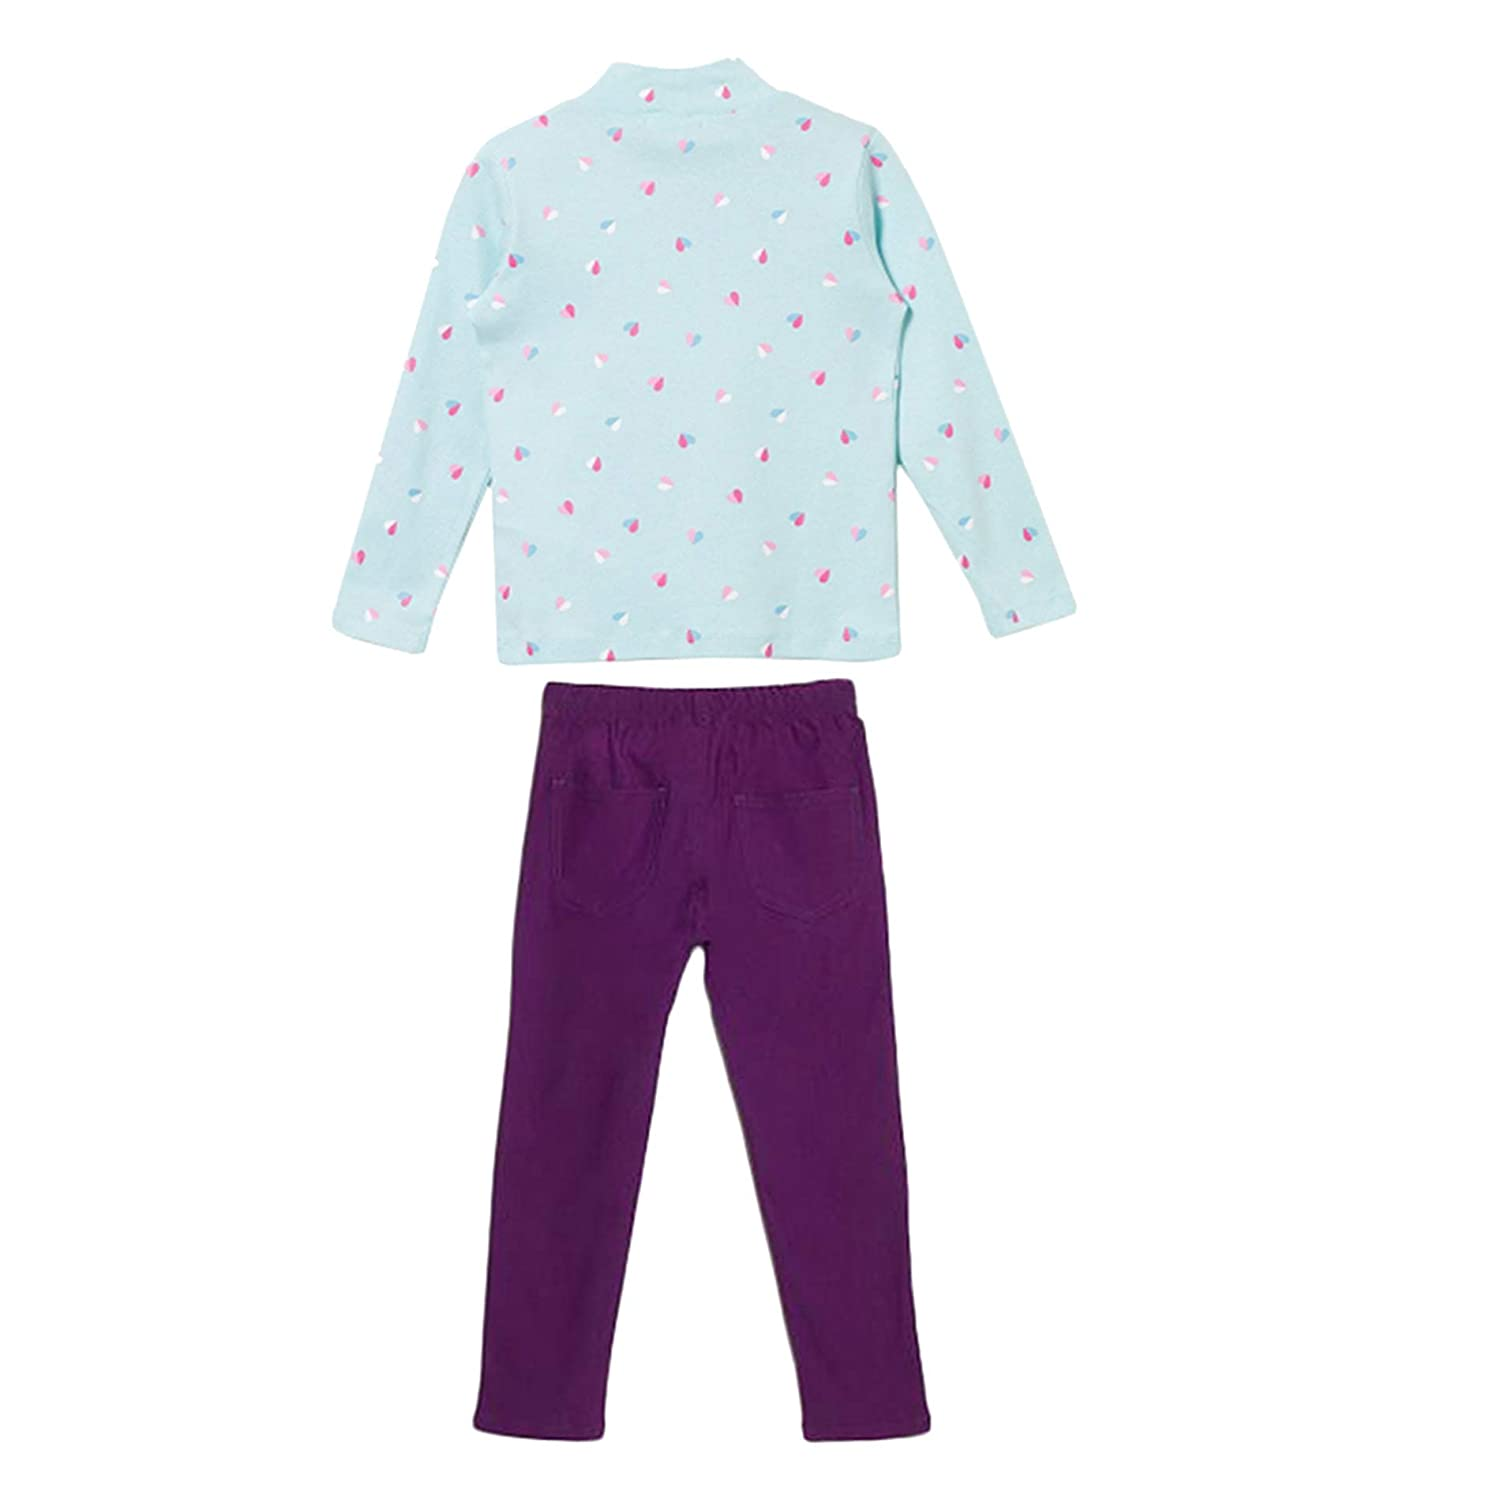 bossini Carnival Girls 2 Pack Long-Sleeved T-Shirt /& Casual Solid Coloured Elasticised Leggings Size 4t 10